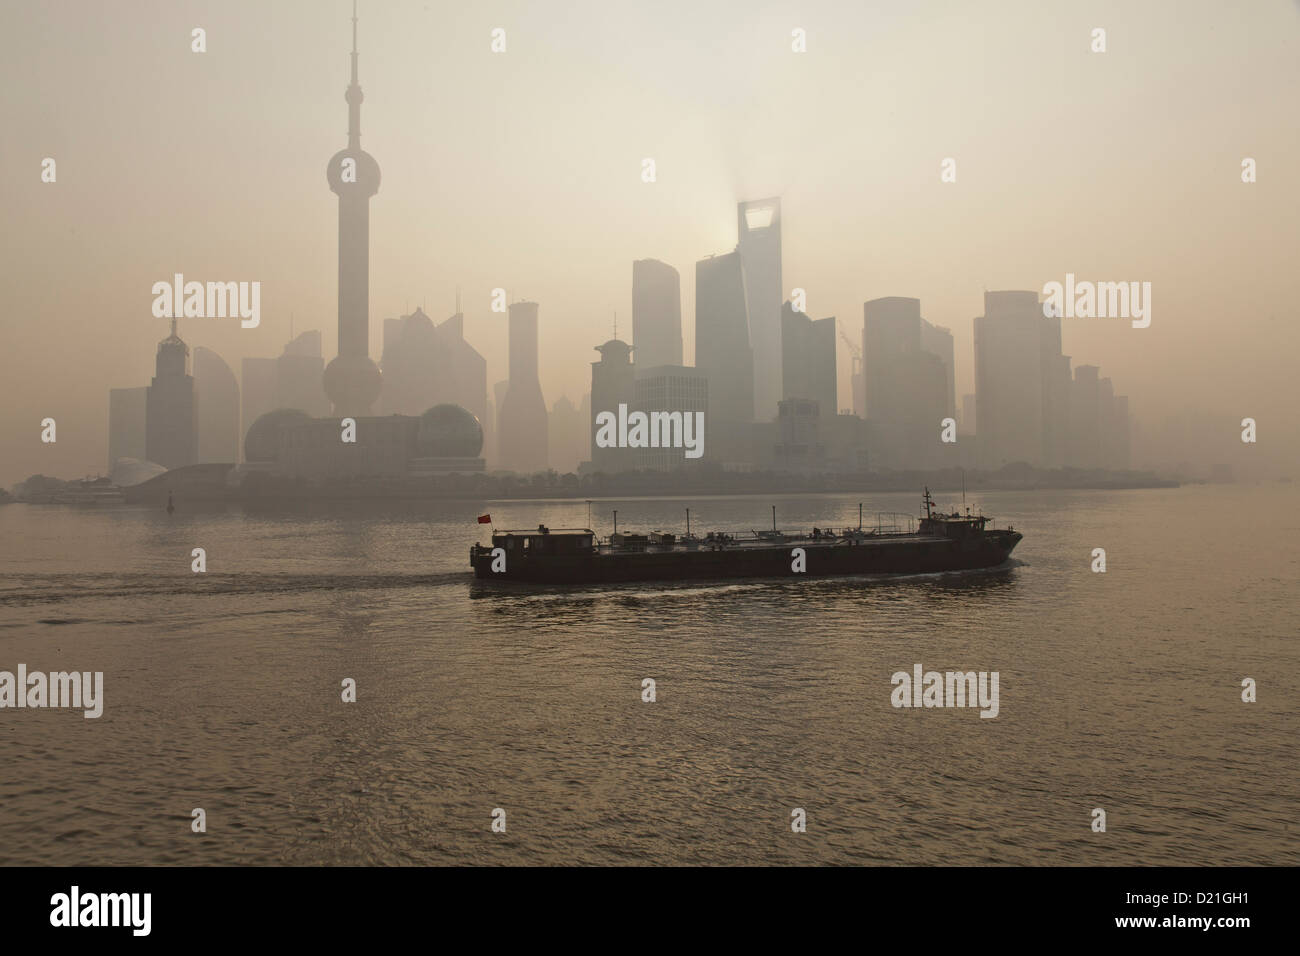 Skyline of Pudong and freighter on Huangpu River at dawn, Pudong, Shanghai, China, Asia Stock Photo